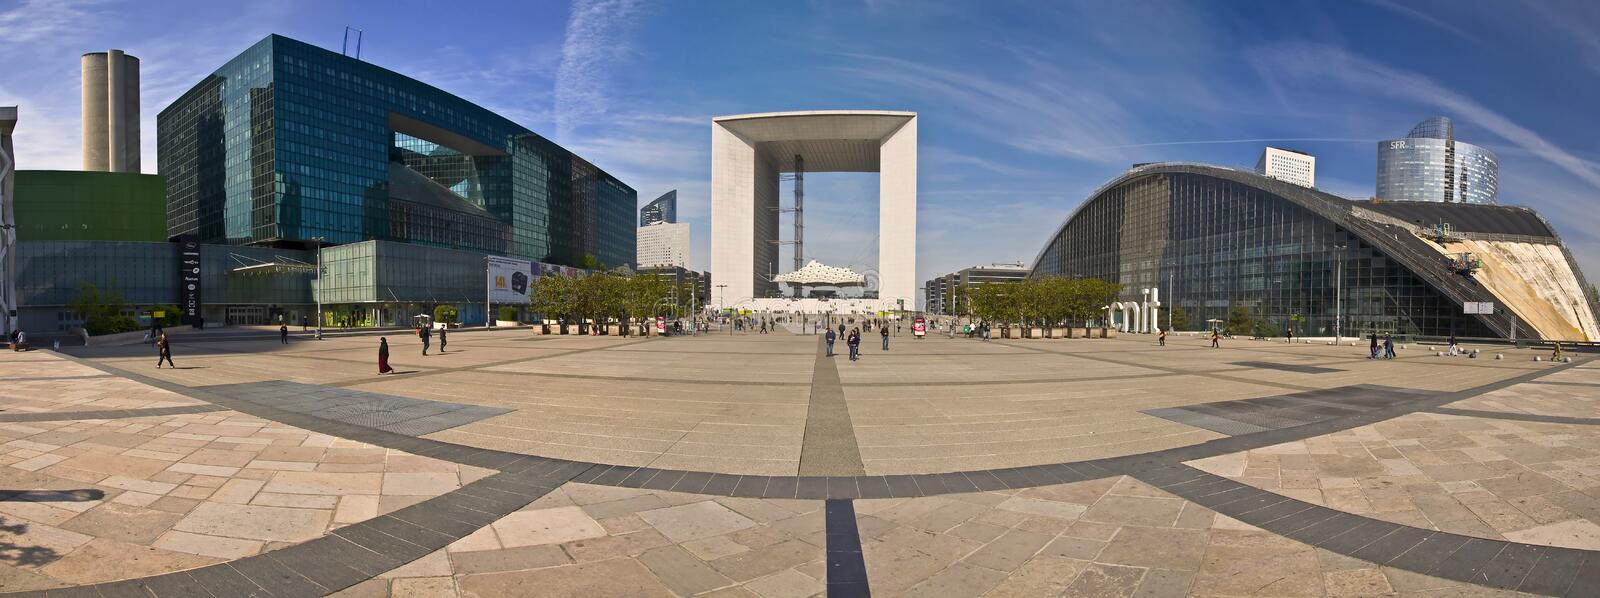 La défense de La de district des affaires de PARIS FRANCE photos stock